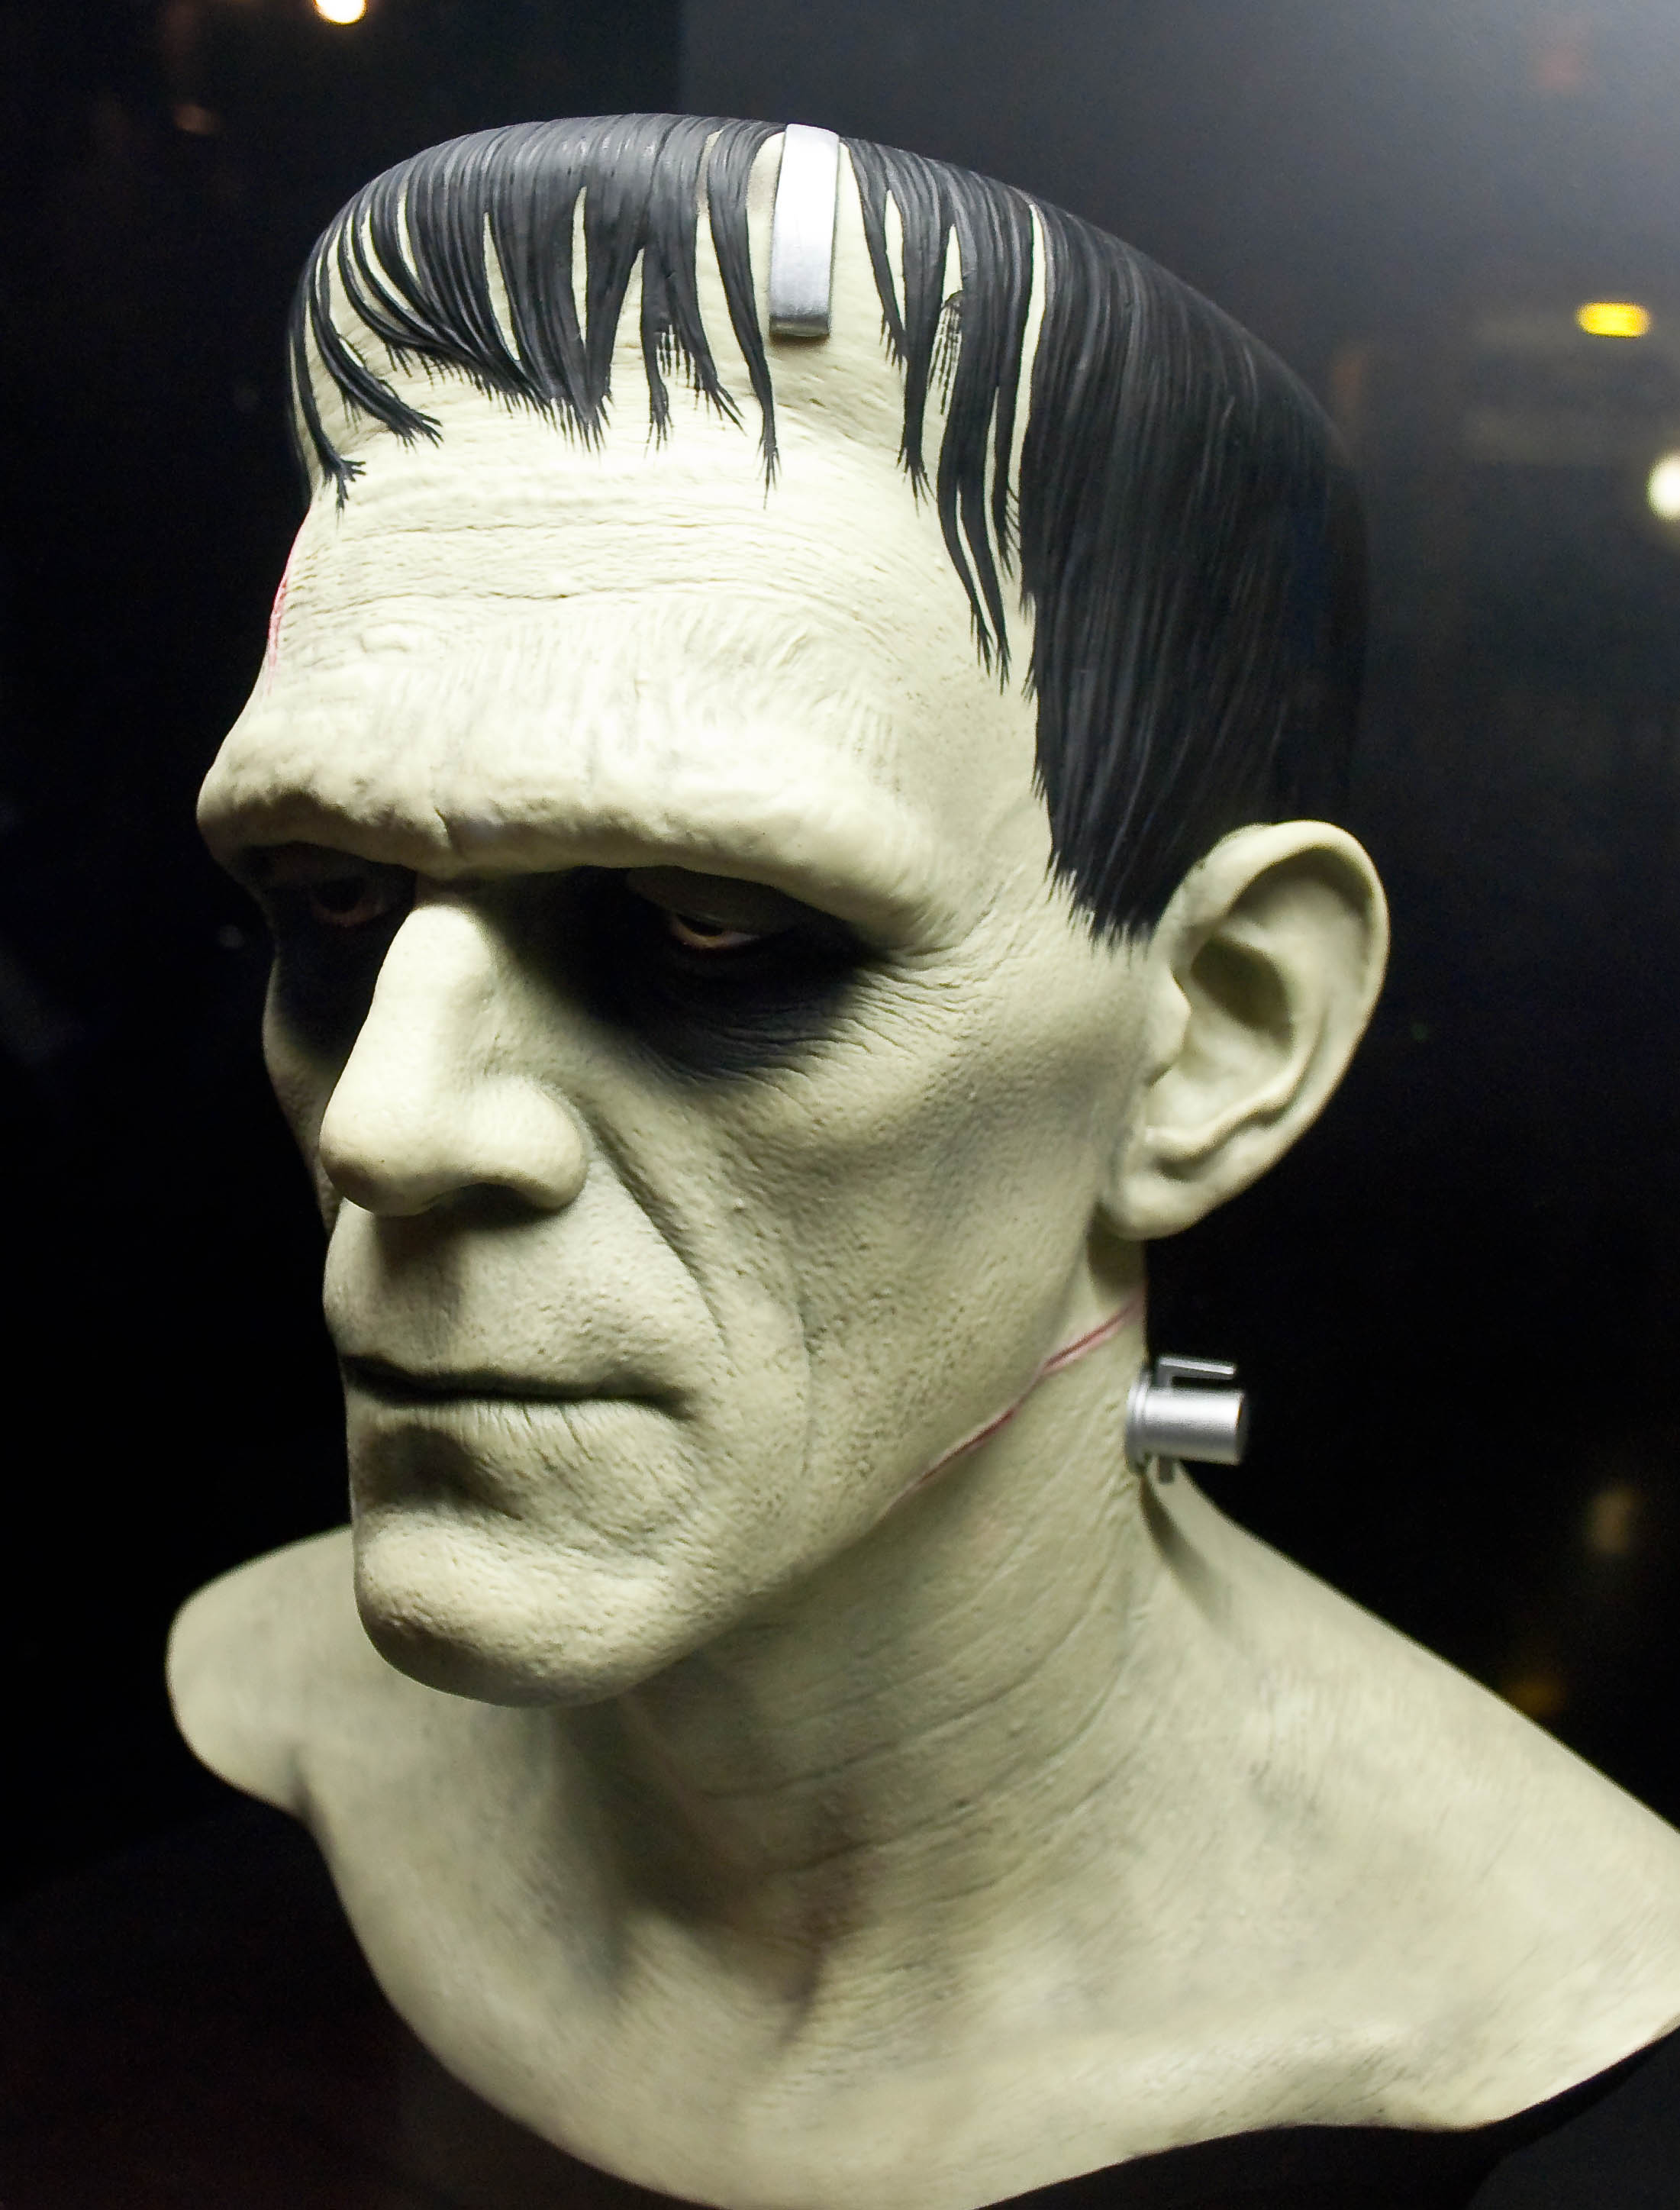 frankenstein and monster Get an answer for 'in frankenstein, what are the similarities and differences between victor's desire for a mate and the creature's desire for a mate' and find homework help for other .